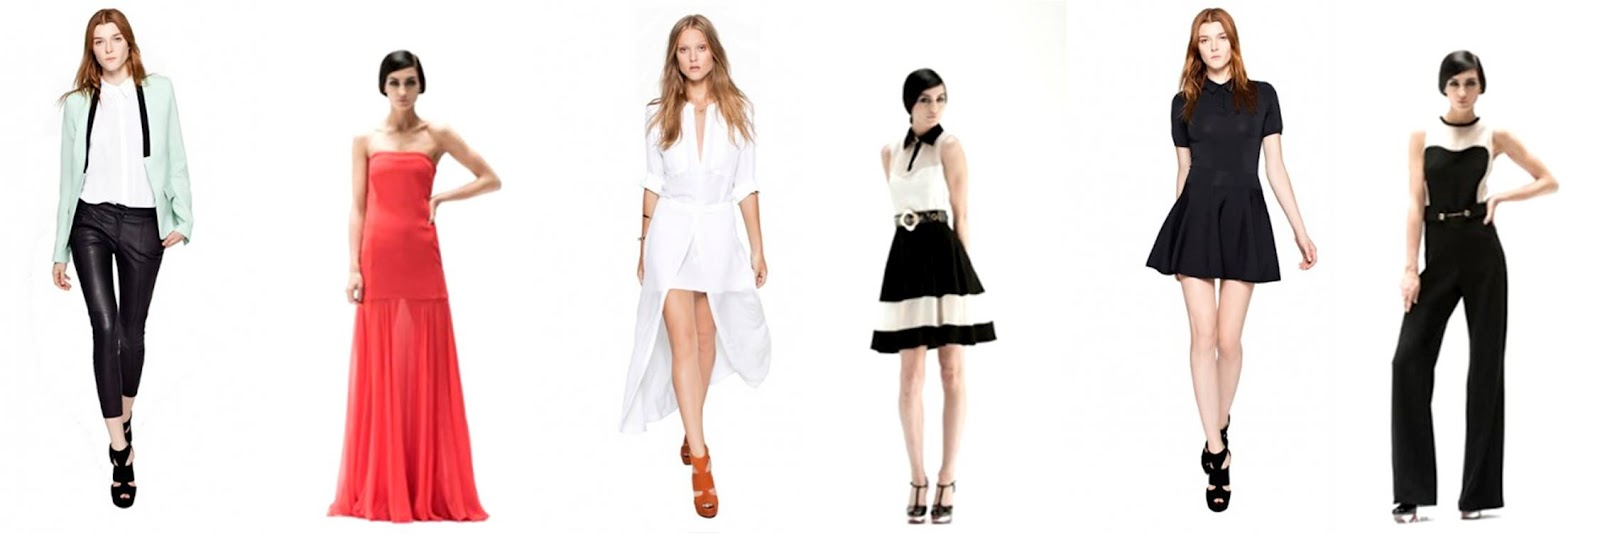 In My Fashion Blog: READing Your Style: The Science of ...